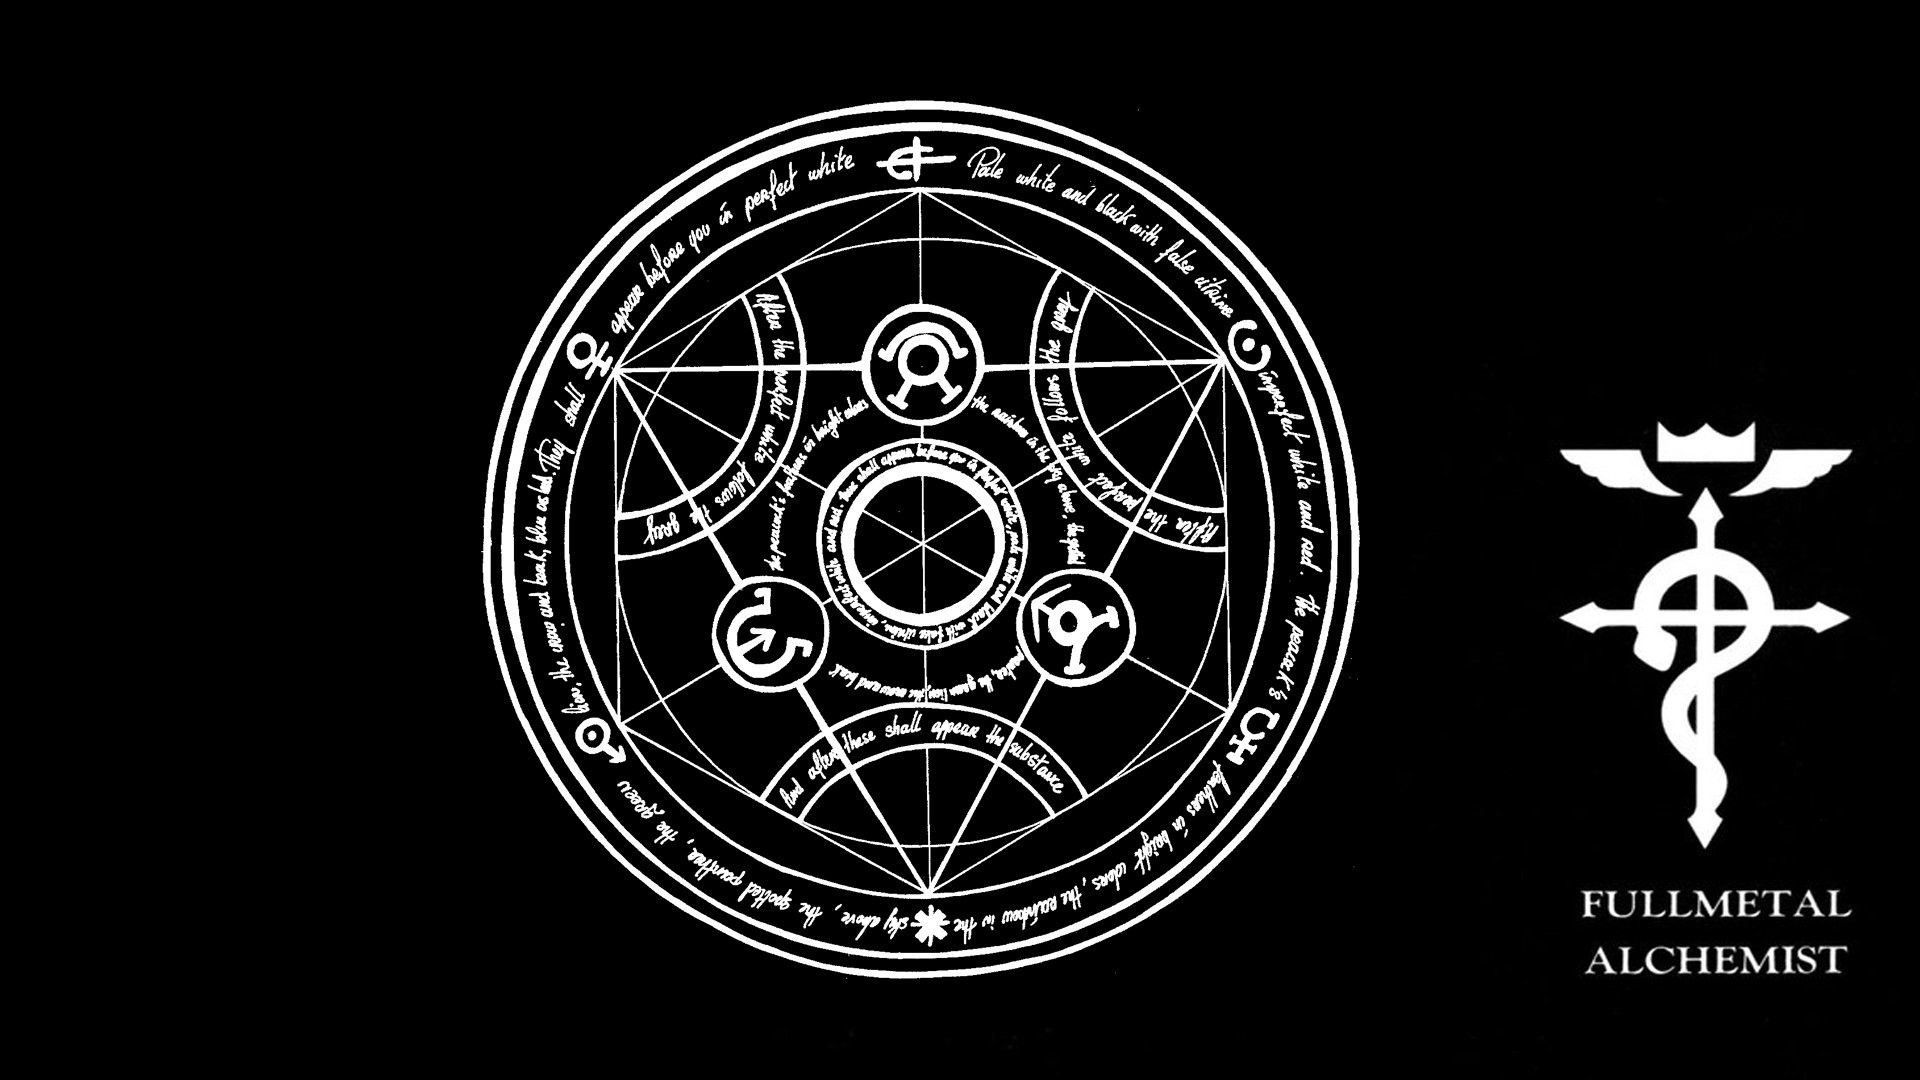 1920x1080 Wallpapers For Fullmetal Alchemist Wallpaper Logo